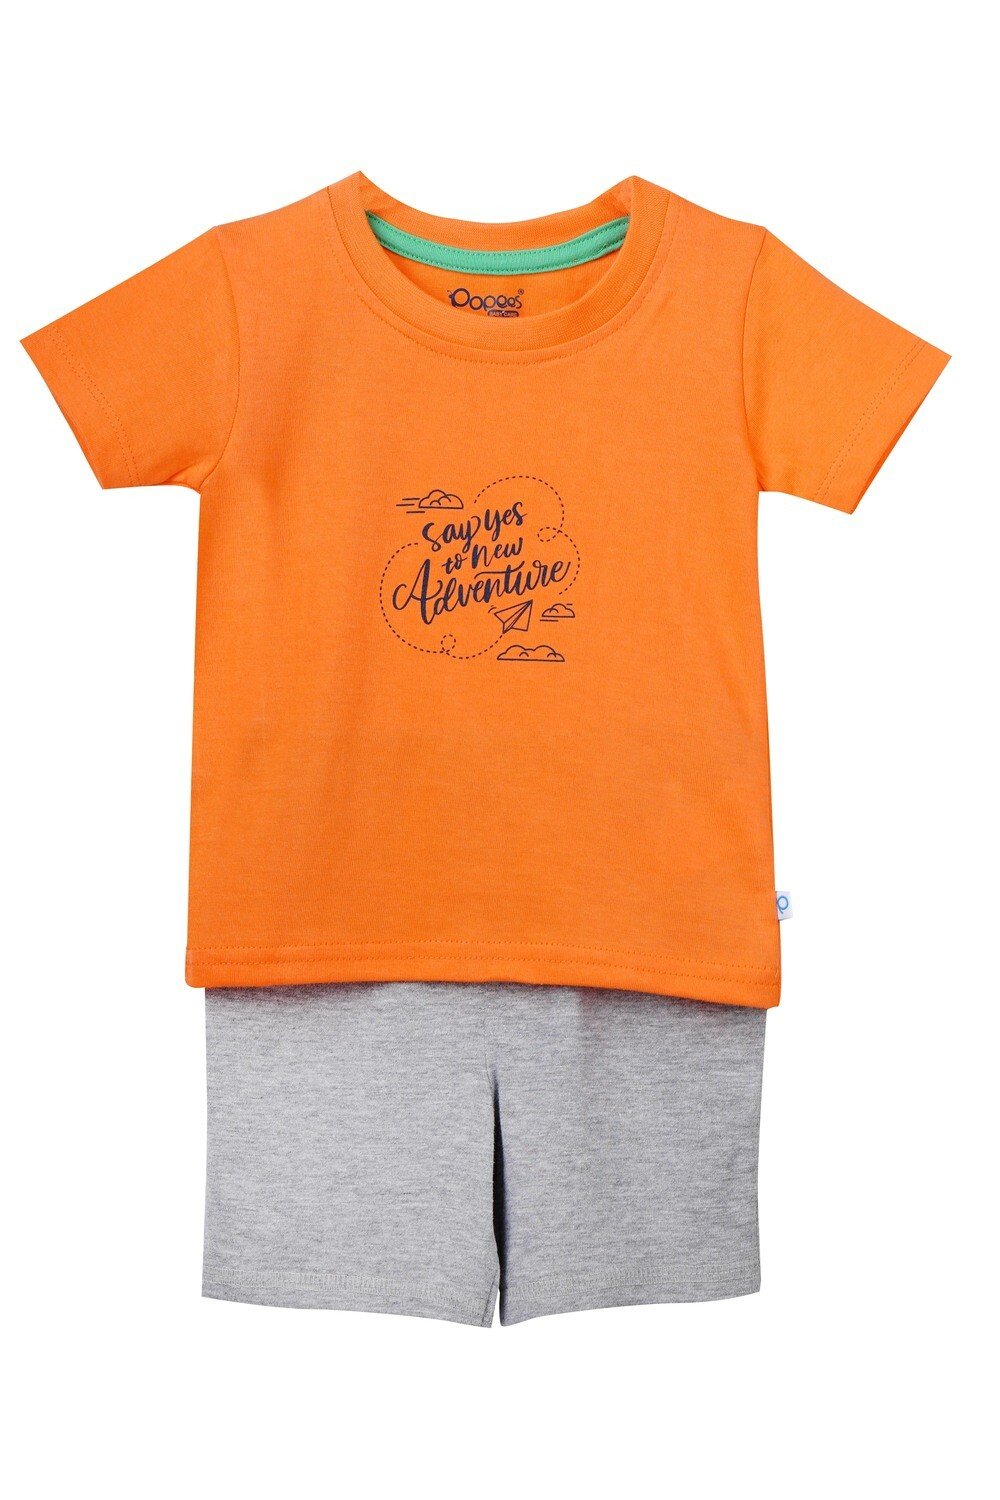 LOGER NECTARINE Top & Shorts Half Sleeve Front Open Cotton Interlock Single Jersey for Baby BOYS during Spring-Summer